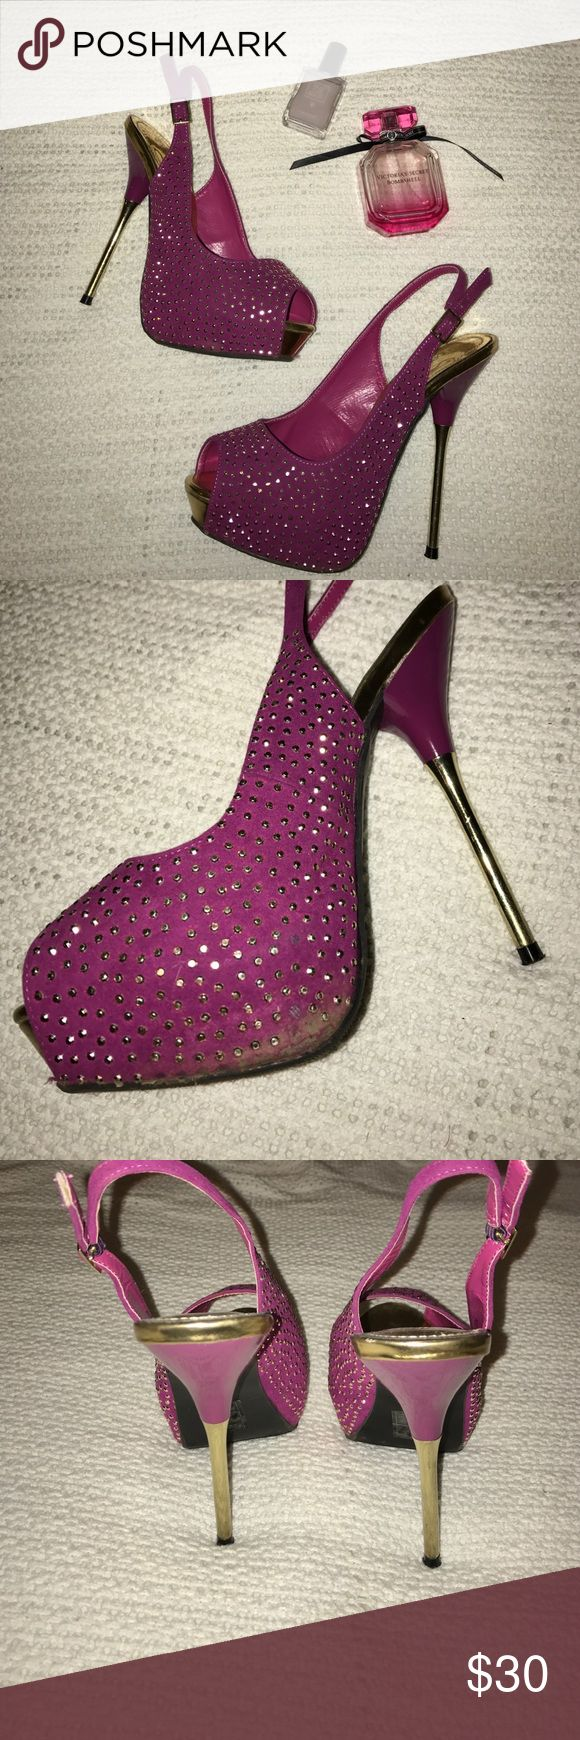 Adorable shoedazzle sling backs Worn once for an outdoor wedding. Got so many compliments on these babies!! Purple and gold. Some wear on material on right inside of shoe; shown in photo. Shoedazzle Shoes Heels